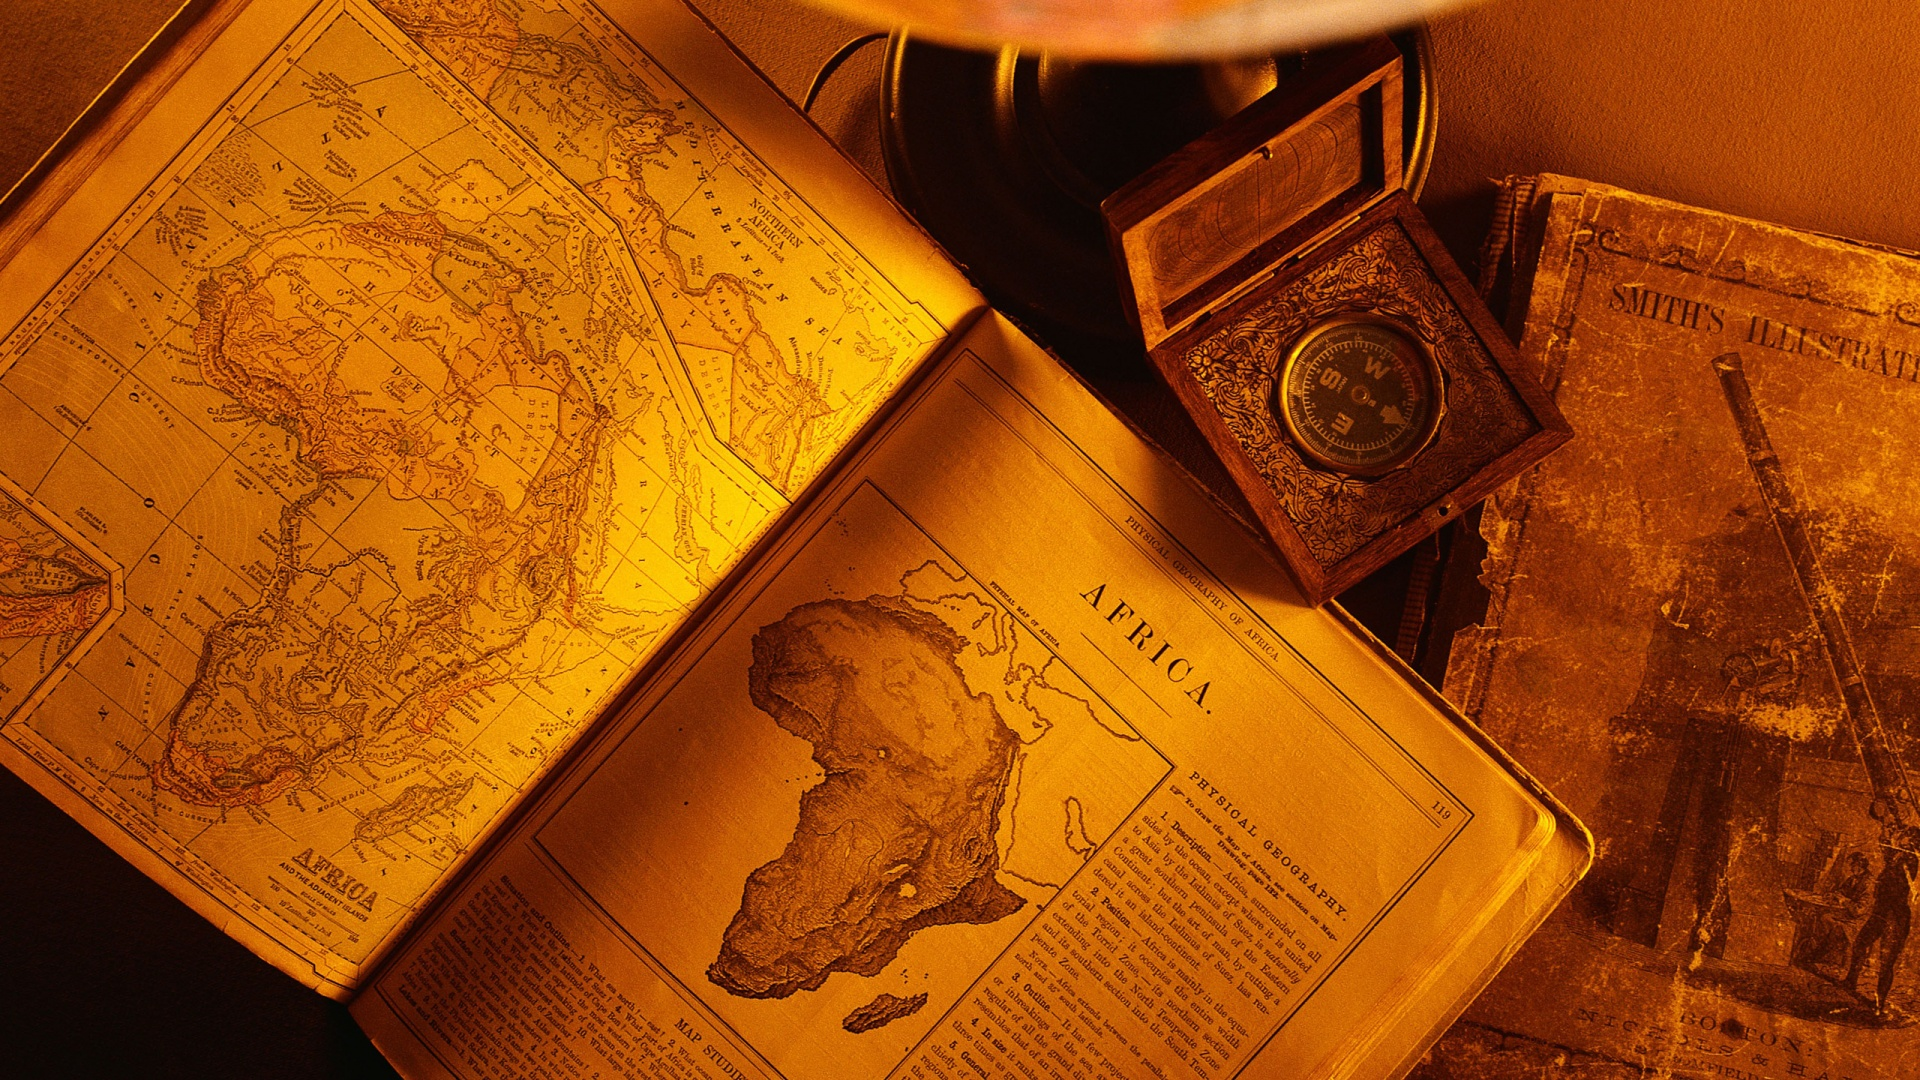 1920x1080 Old Books desktop wallpapers and stock photos 1920x1080